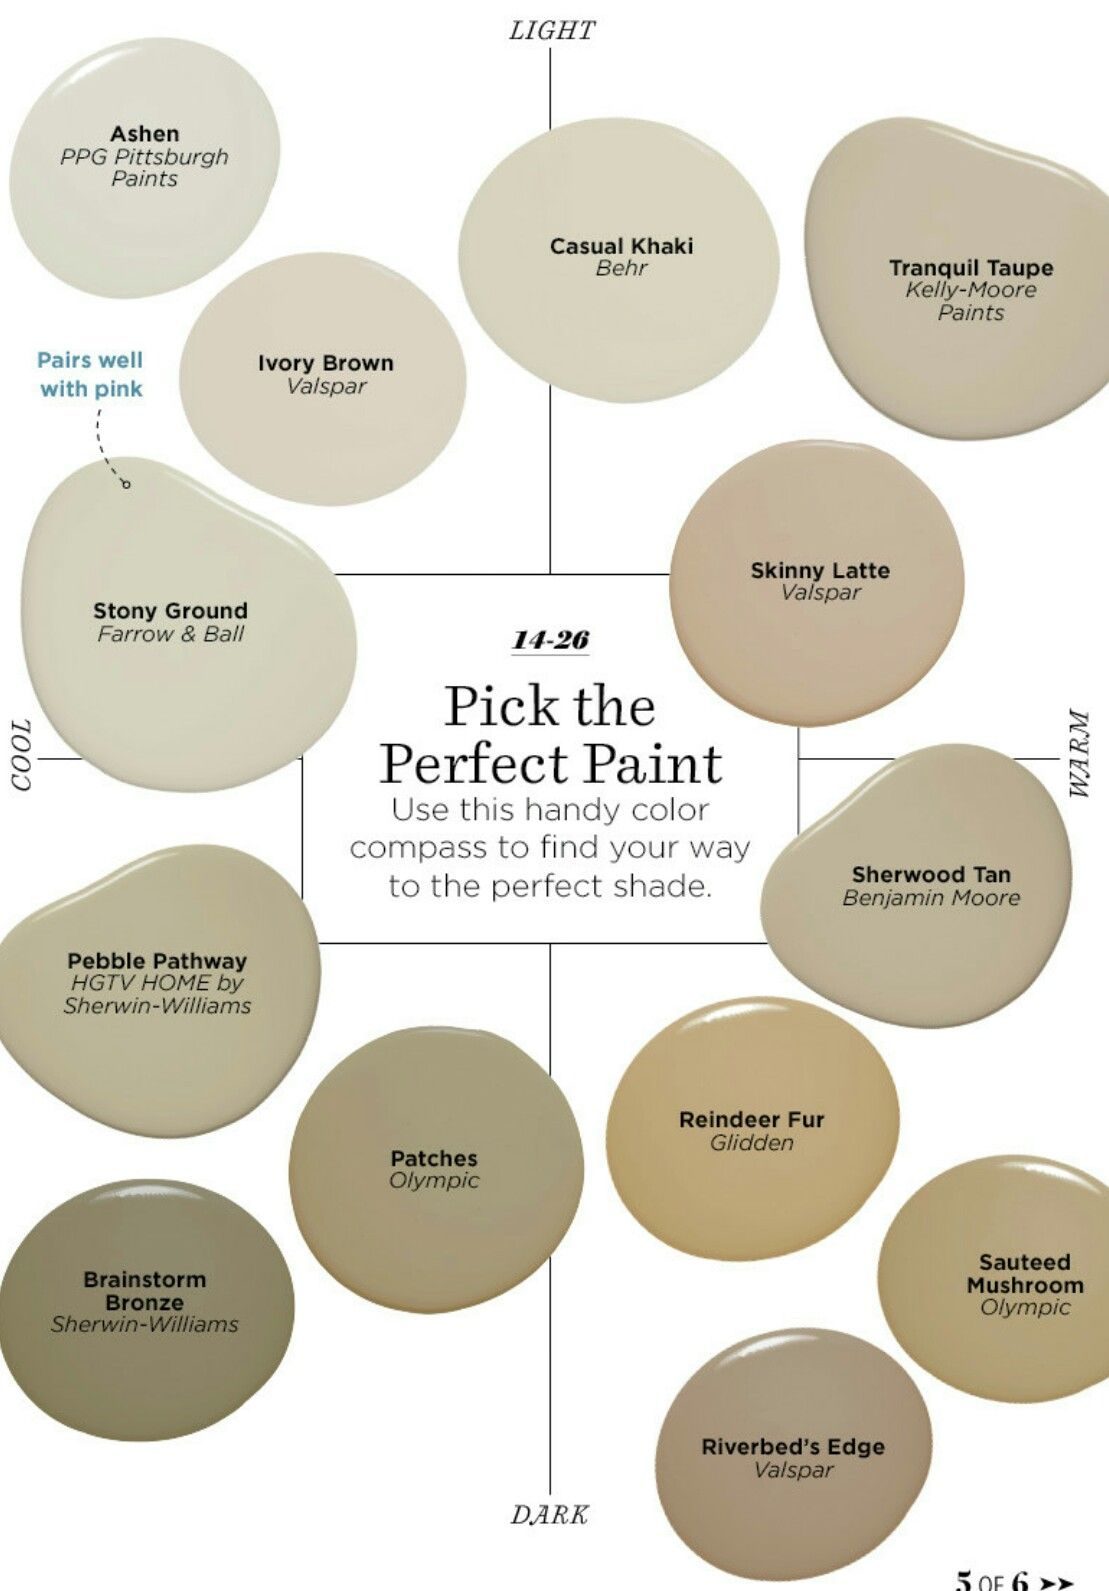 Taupe Paint Colors Living Room: Pin By Stephanie Beard On DIY - Walls